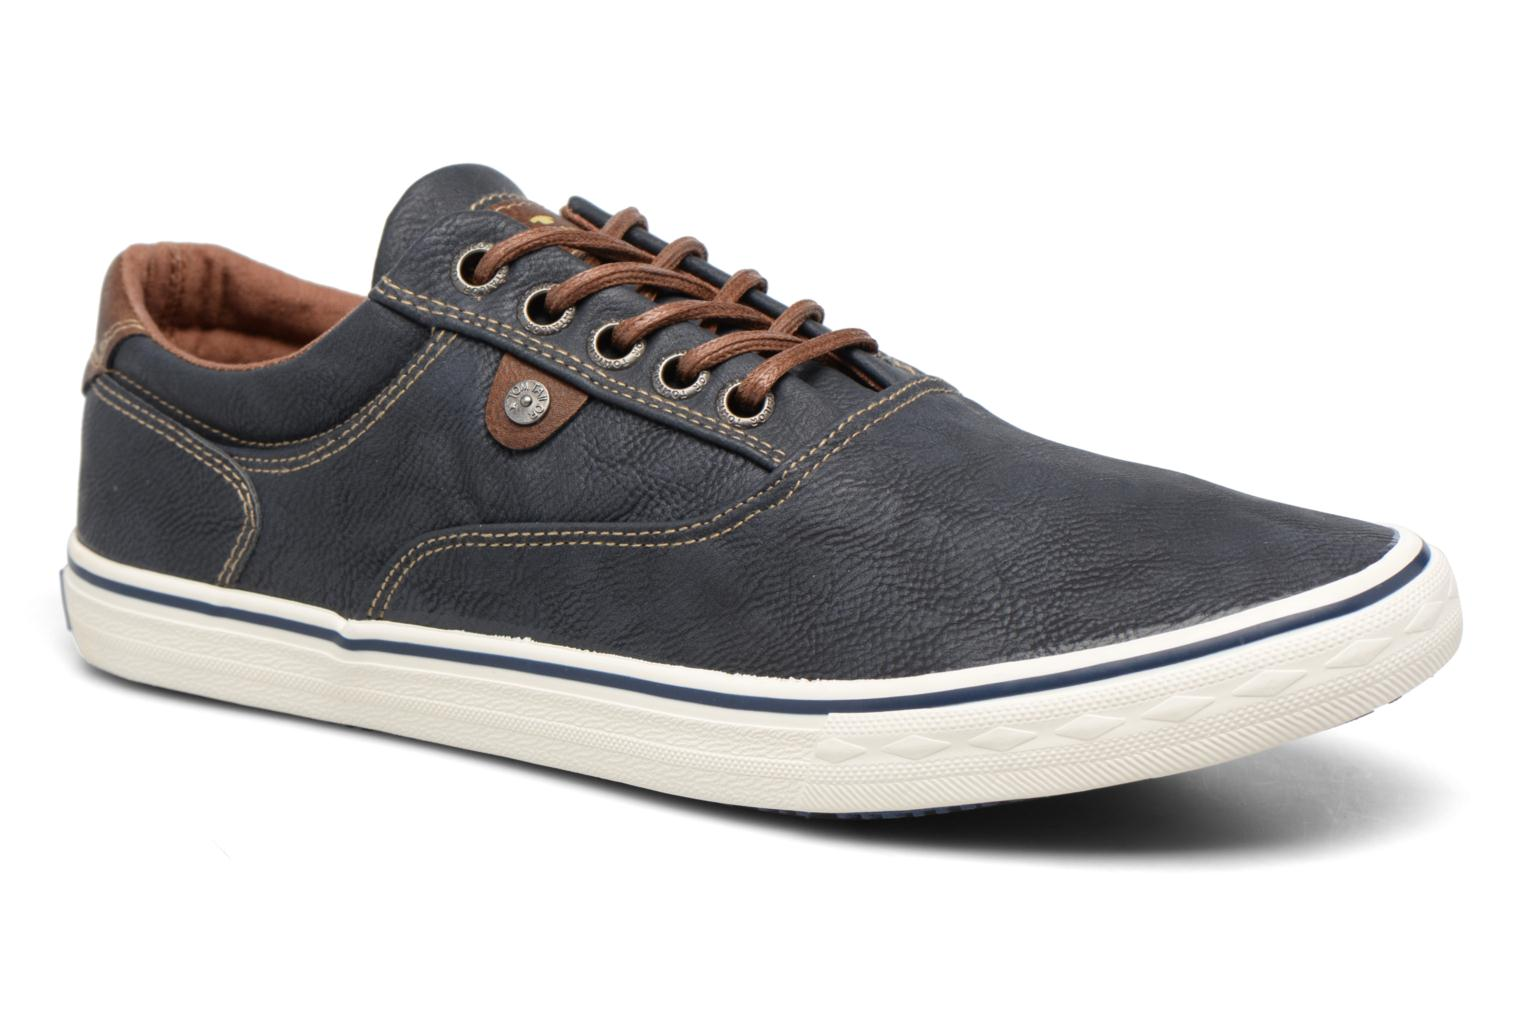 Marques Chaussure homme Tom Tailor homme Nino Navy